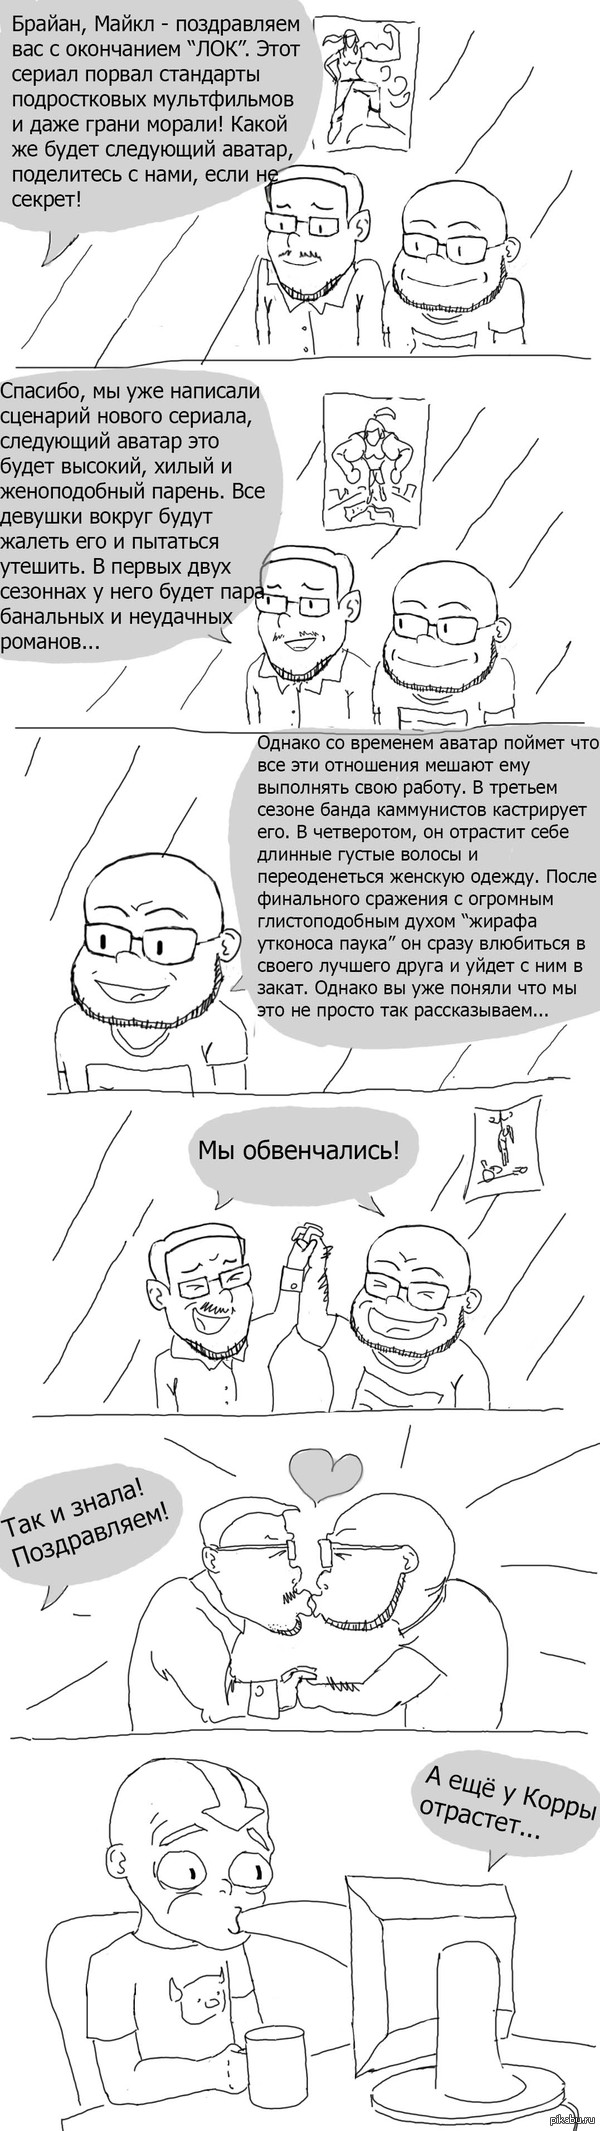 аватар не: